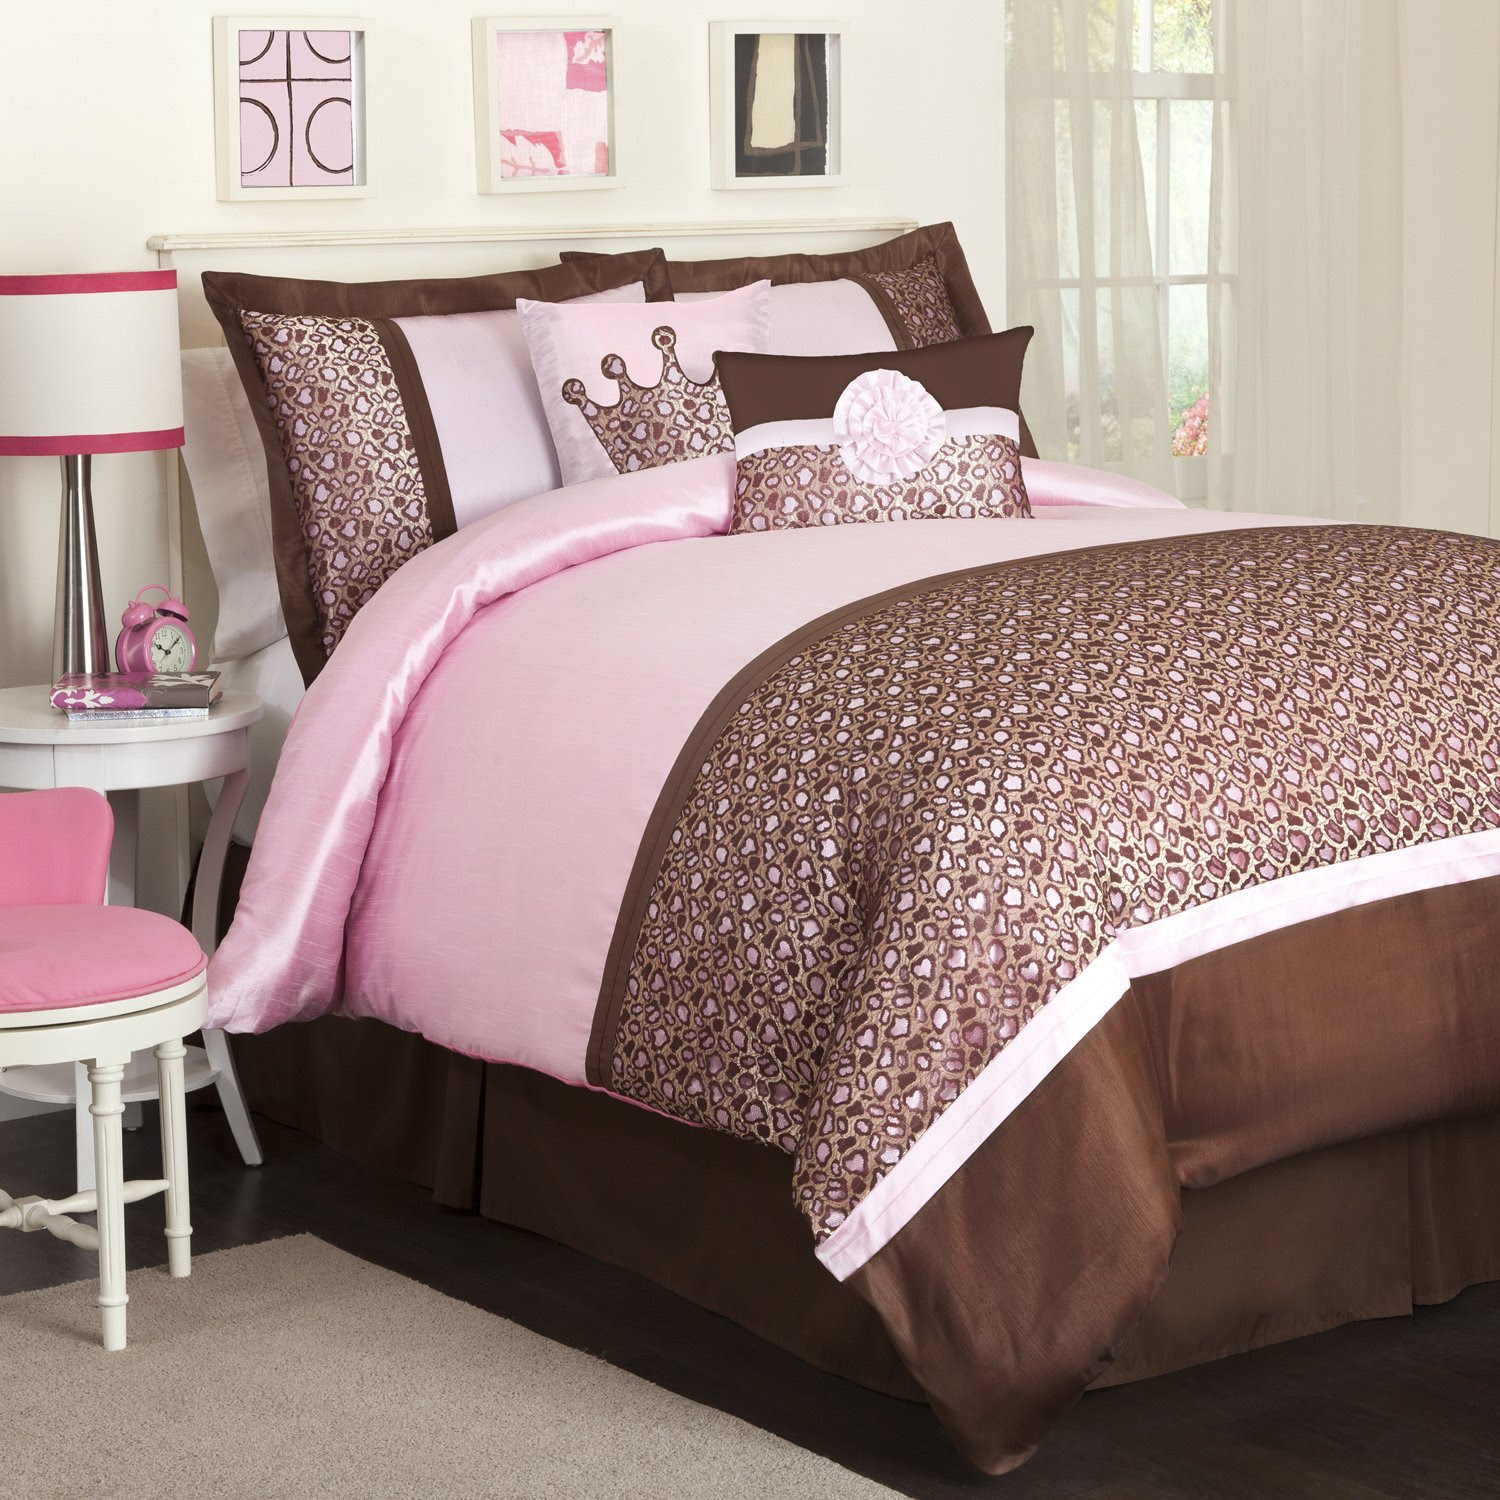 Best Graphic of Pink And Brown Bedroom | Ryan Nicolai